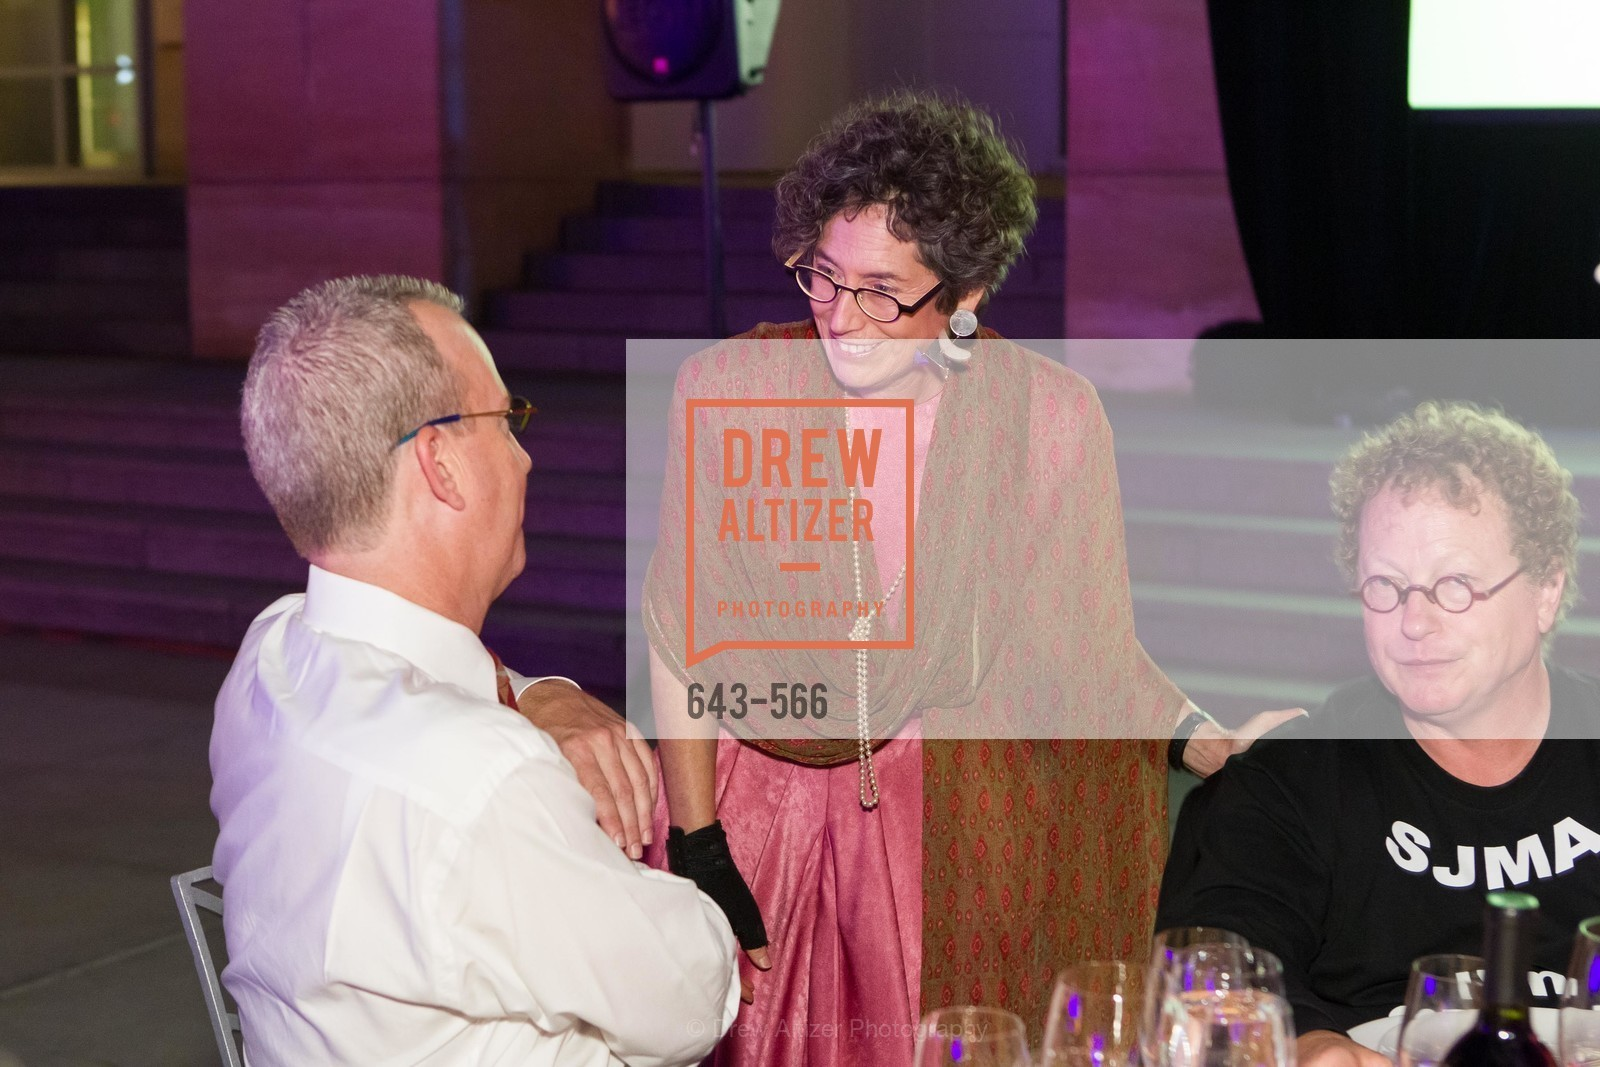 Mike Dove, Susan Krane, Ed Frank, SAN JOSE MUSEUM OF ART'S Spectrum Gala - 45th Anniversary, US, September 13th, 2014,Drew Altizer, Drew Altizer Photography, full-service agency, private events, San Francisco photographer, photographer california